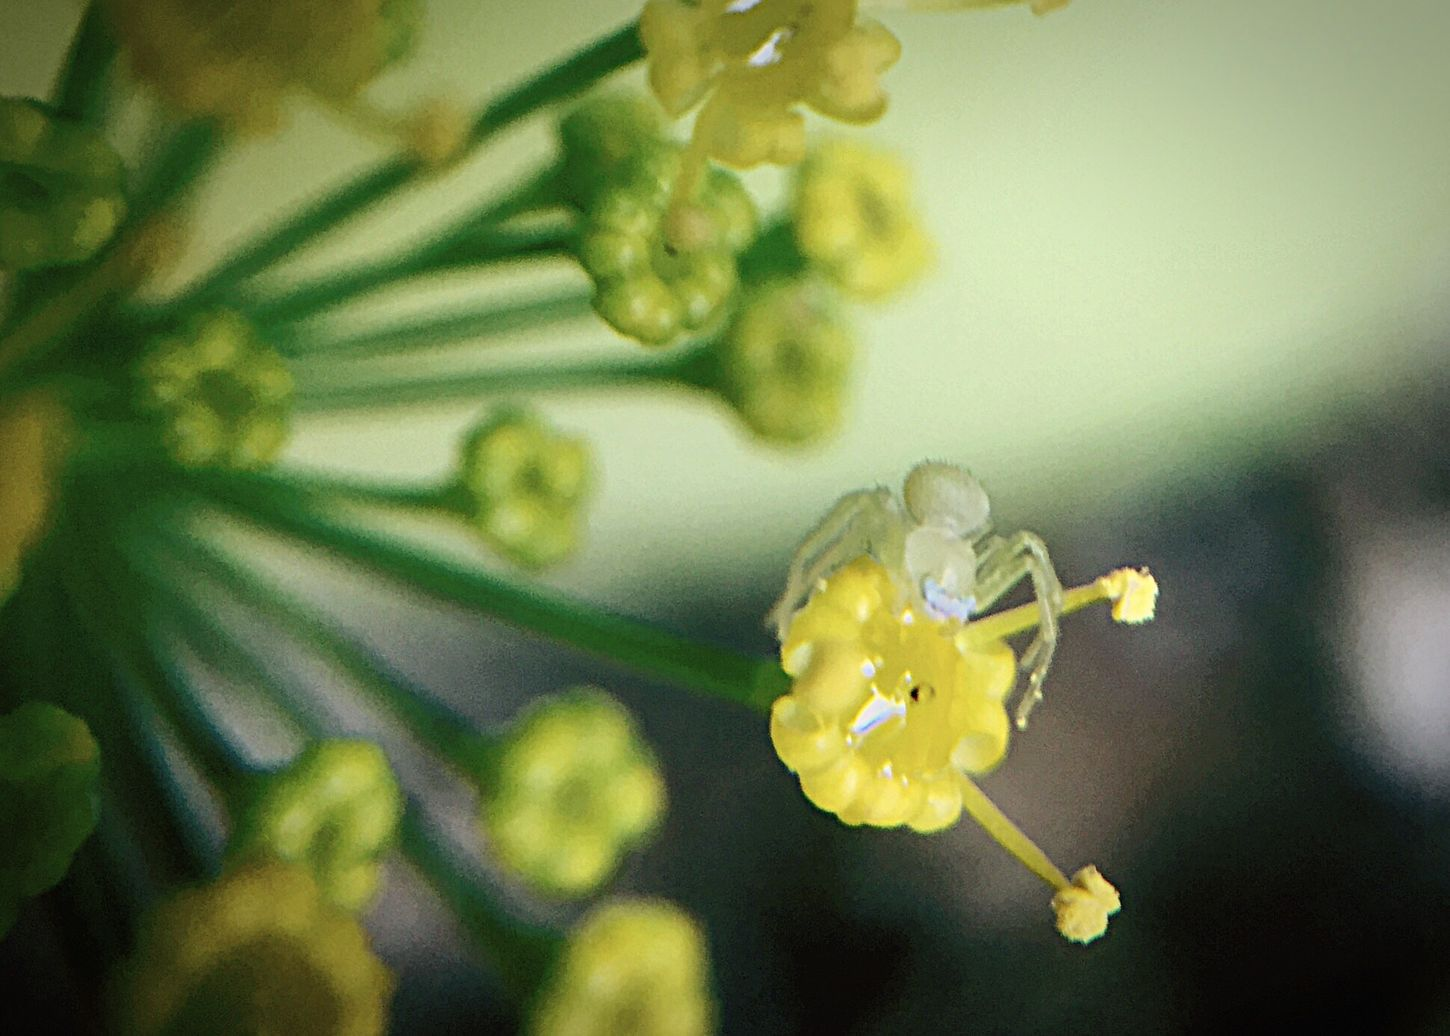 Flower Of Dill Plant Very Small Timy See Through Spider Albino?